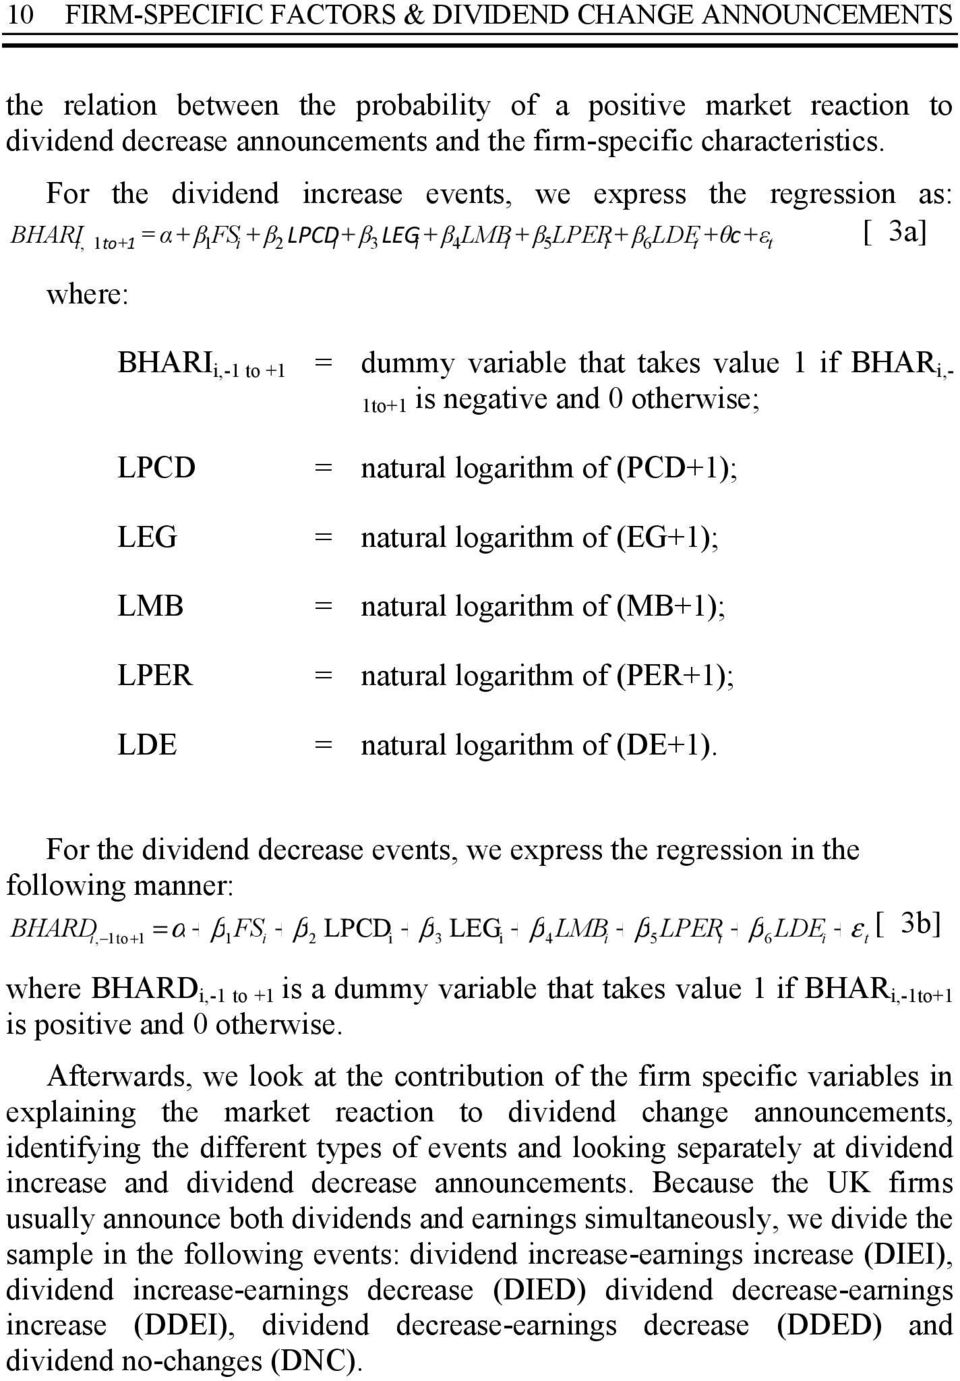 that takes value 1 if BHAR i,- 1to+1 is negative and 0 otherwise; LPCD LEG LMB LPER LDE = natural logarithm of (PCD+1); = natural logarithm of (EG+1); = natural logarithm of (MB+1); = natural